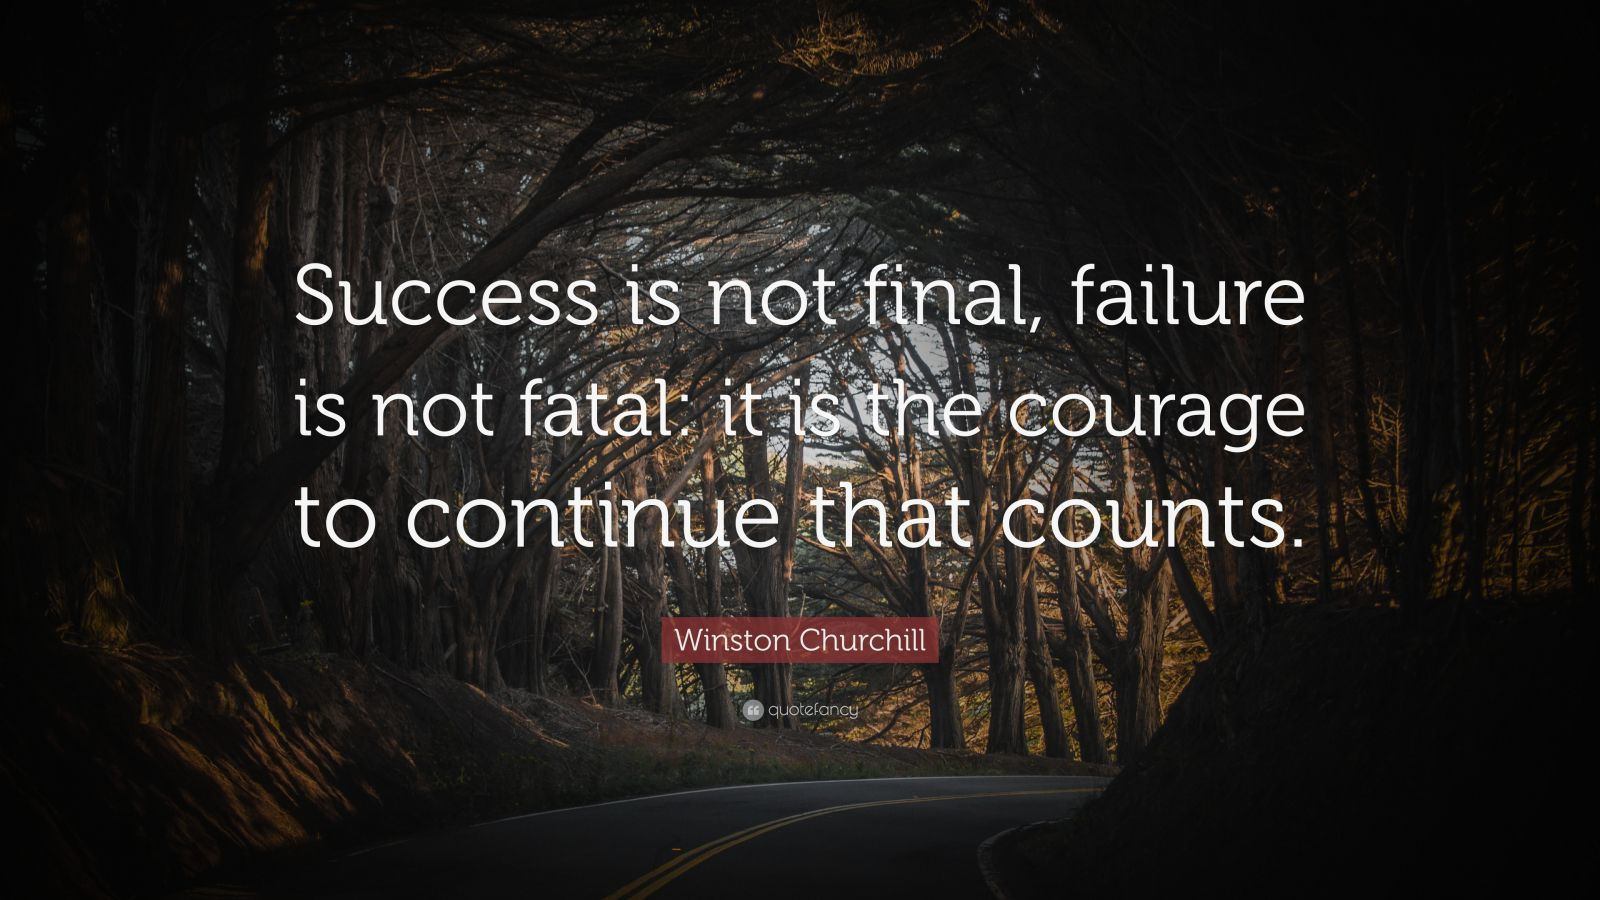 Winston Churchill Quote Success Is Not Final Failure Is Not Fatal It Is The Courage To Conti Churchill Quotes Winston Churchill Quotes Success Is Not Final